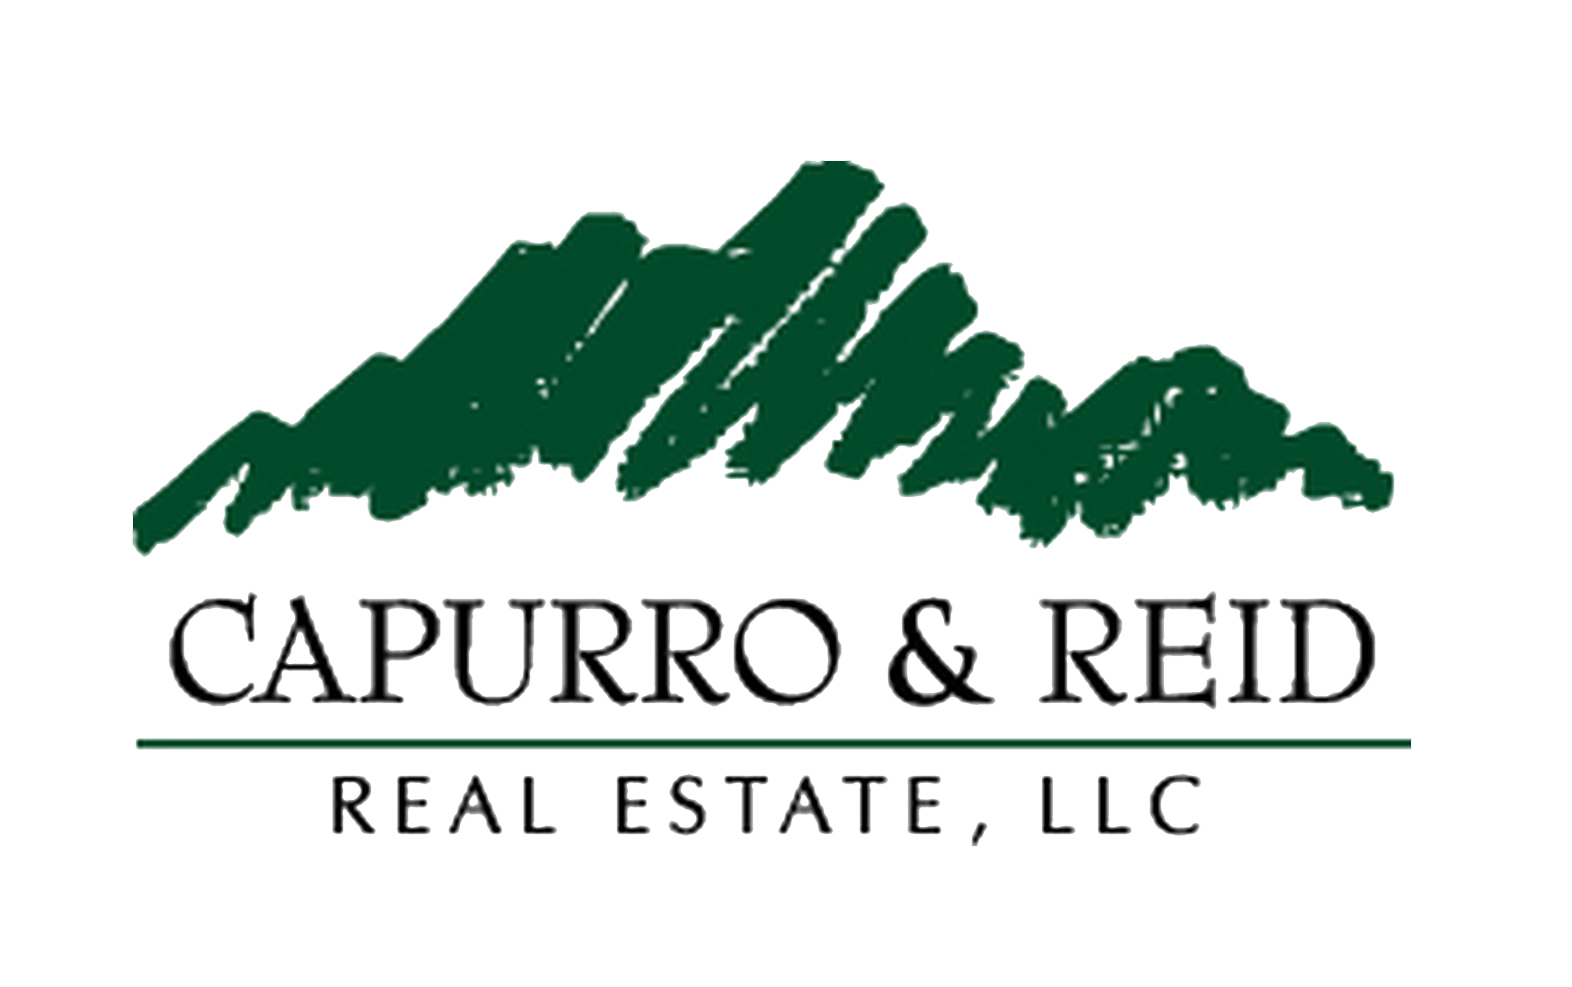 Capurro & Reid Real Estate,LLC